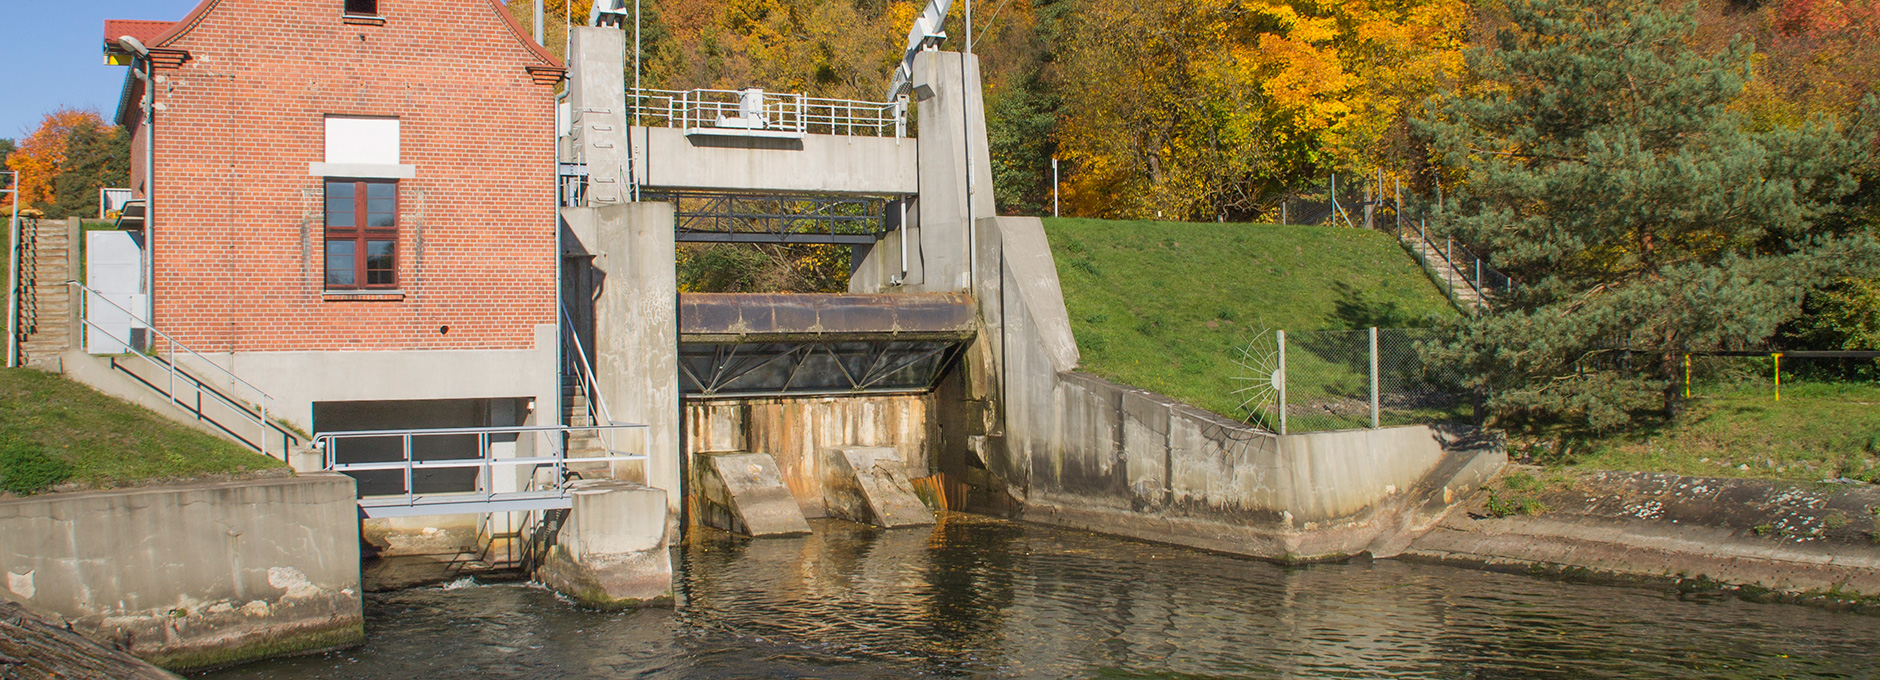 annex-II-small-scale-hydropower-banner-01